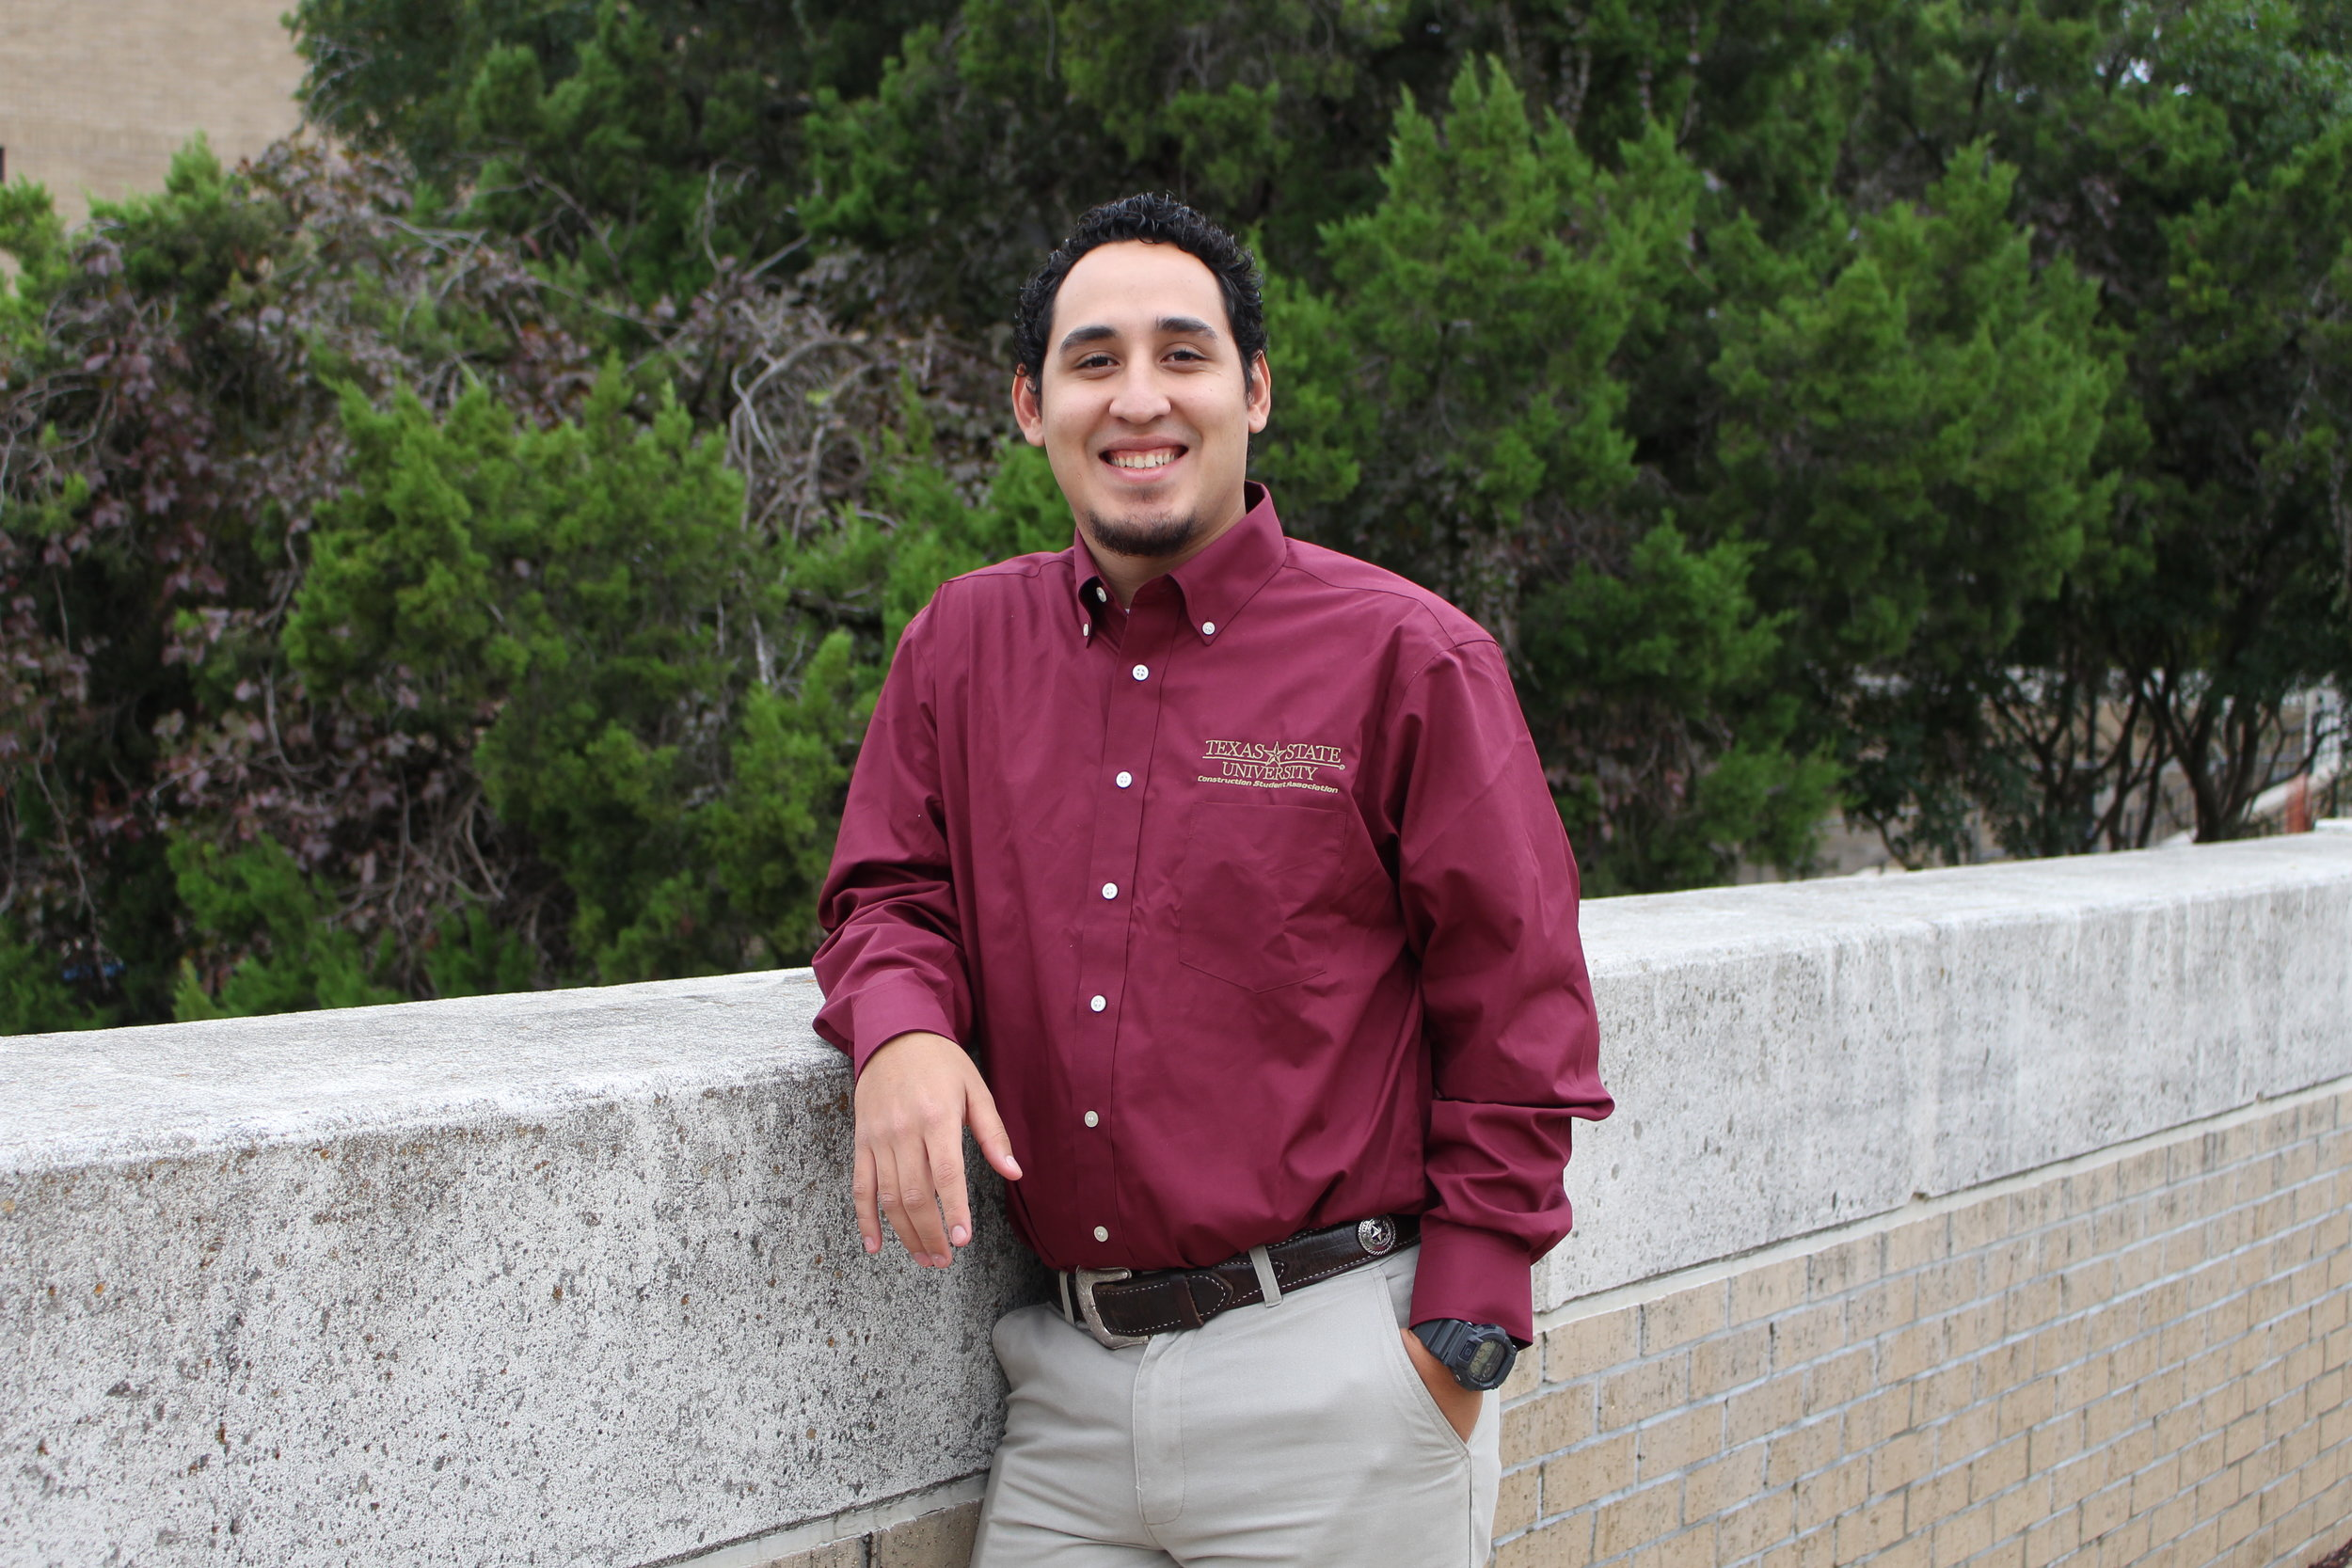 Student Outreach -Rodrigo Valle - Hometown: Houston, TX Graduation: Spring 2020Field of Interest: CommercialPast Experience: 4 years residential remodeling. Summer 2018 Argos US. Internship. Austin Commercial.Tasks: Responsible for reaching out to the community attempting to make the surrounding areas a better place for the less fortunate. On top of that this role also stays involved with social media to let the public know what we have going on.Contact: rdv23@txstate.edu